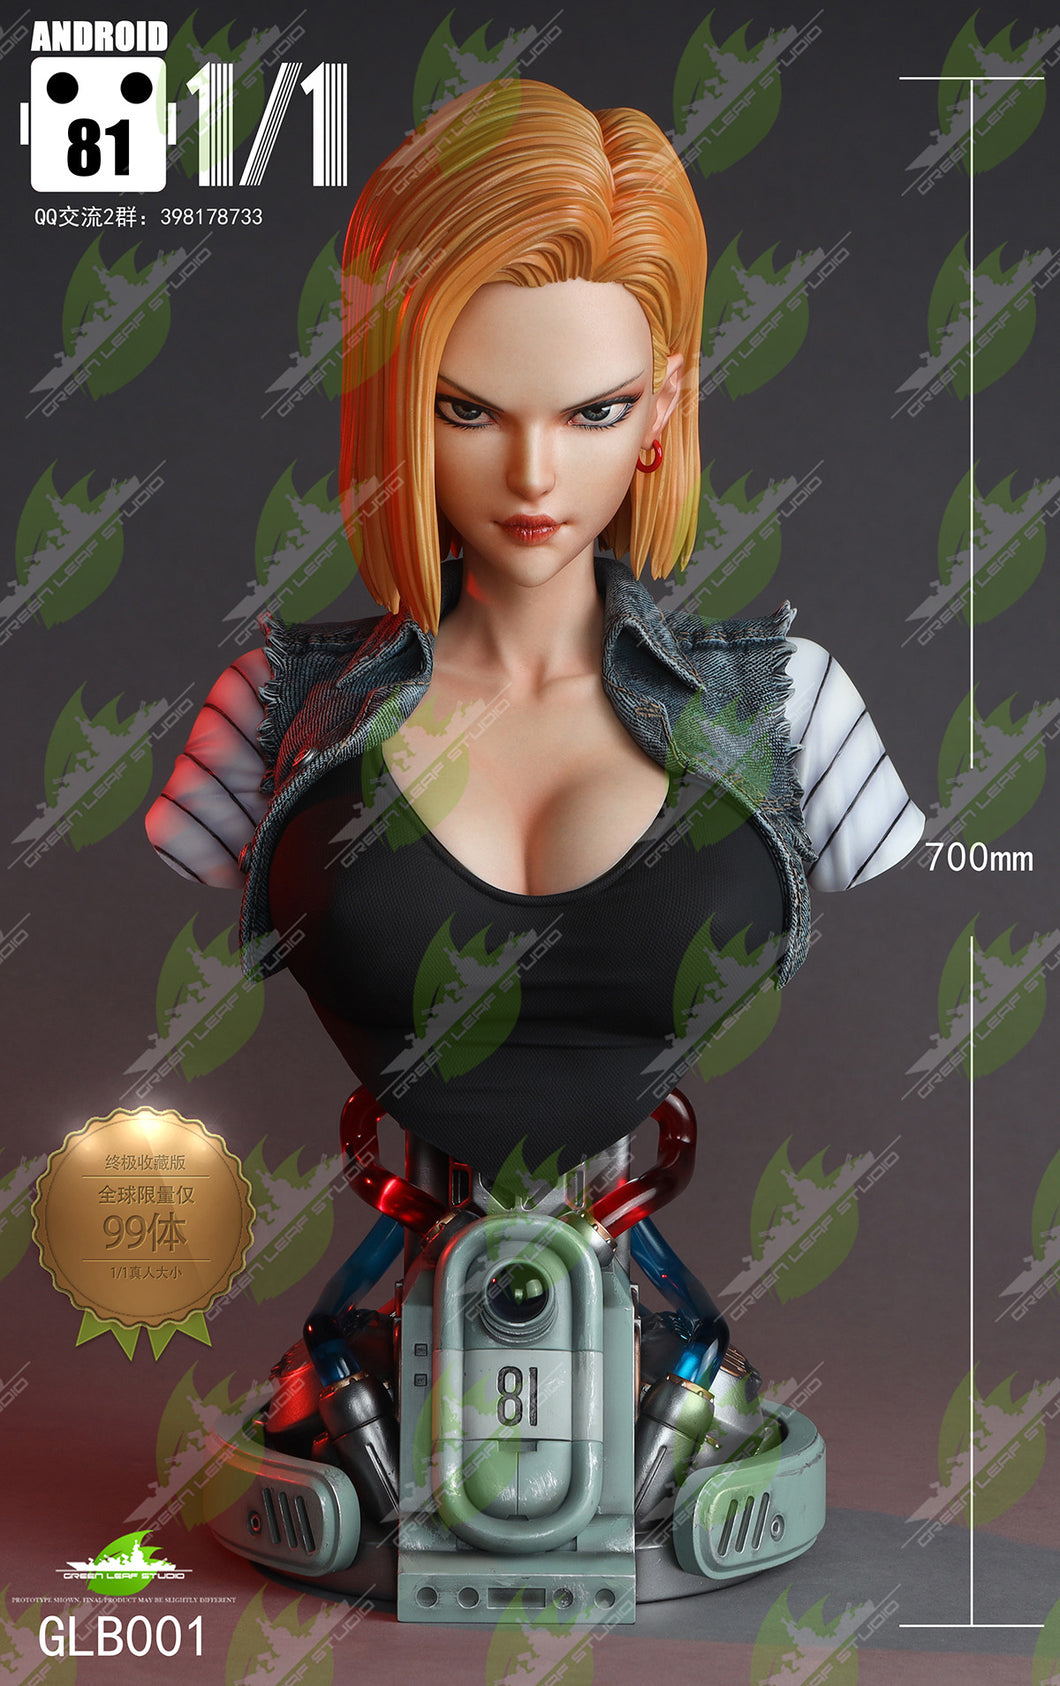 1:1 Scale ANDROID #18 (Lazuli) - Dragon Ball Resin Statue - Green Leaf Studios [Pre-Order]